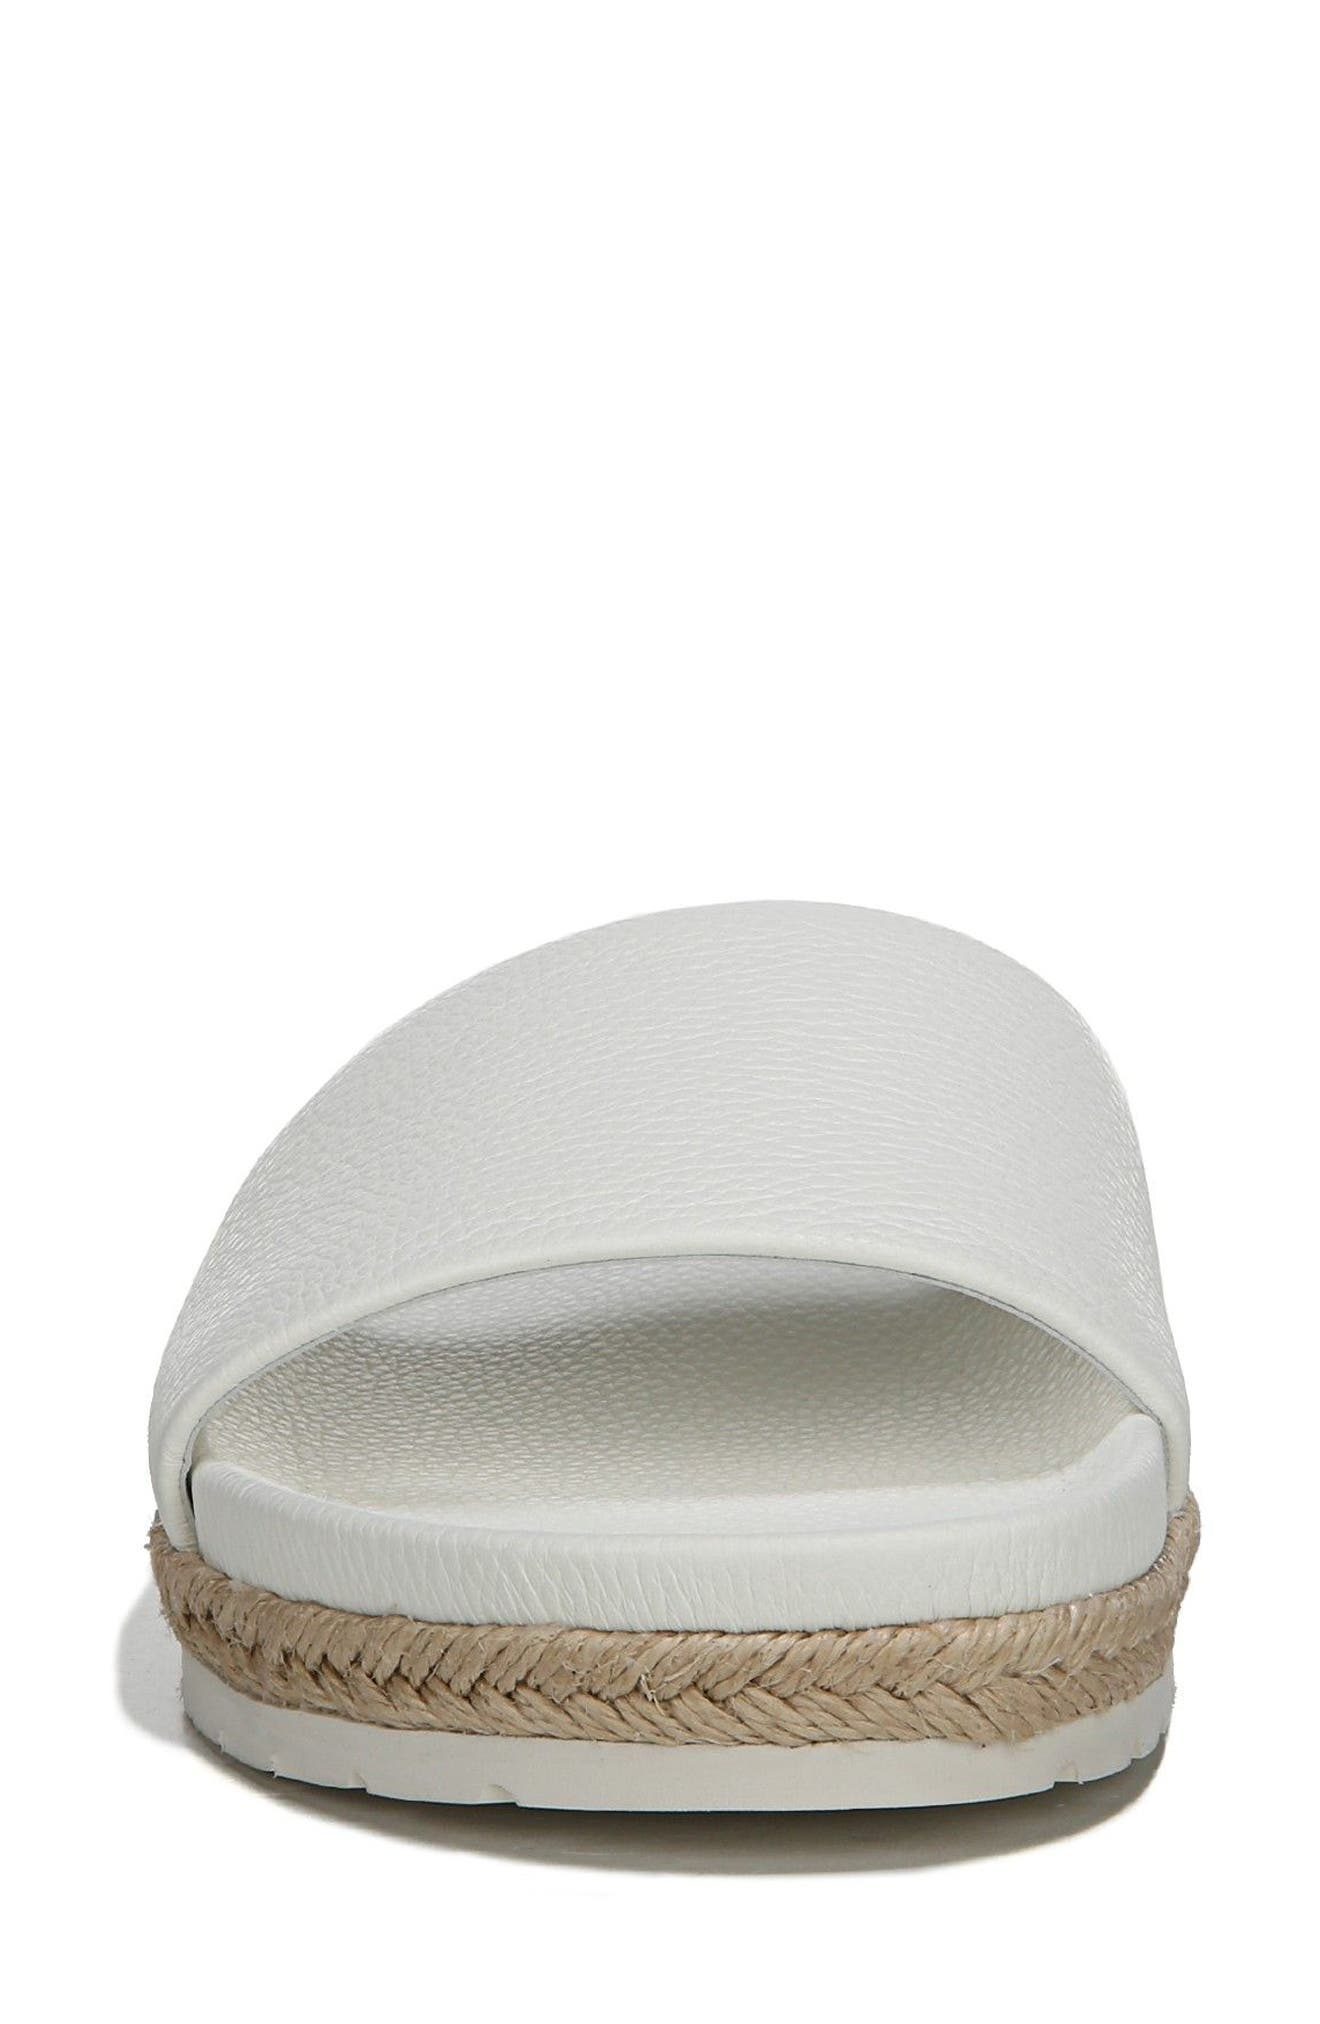 Aurelia Slide Sandal,                             Alternate thumbnail 4, color,                             Panna Cotta